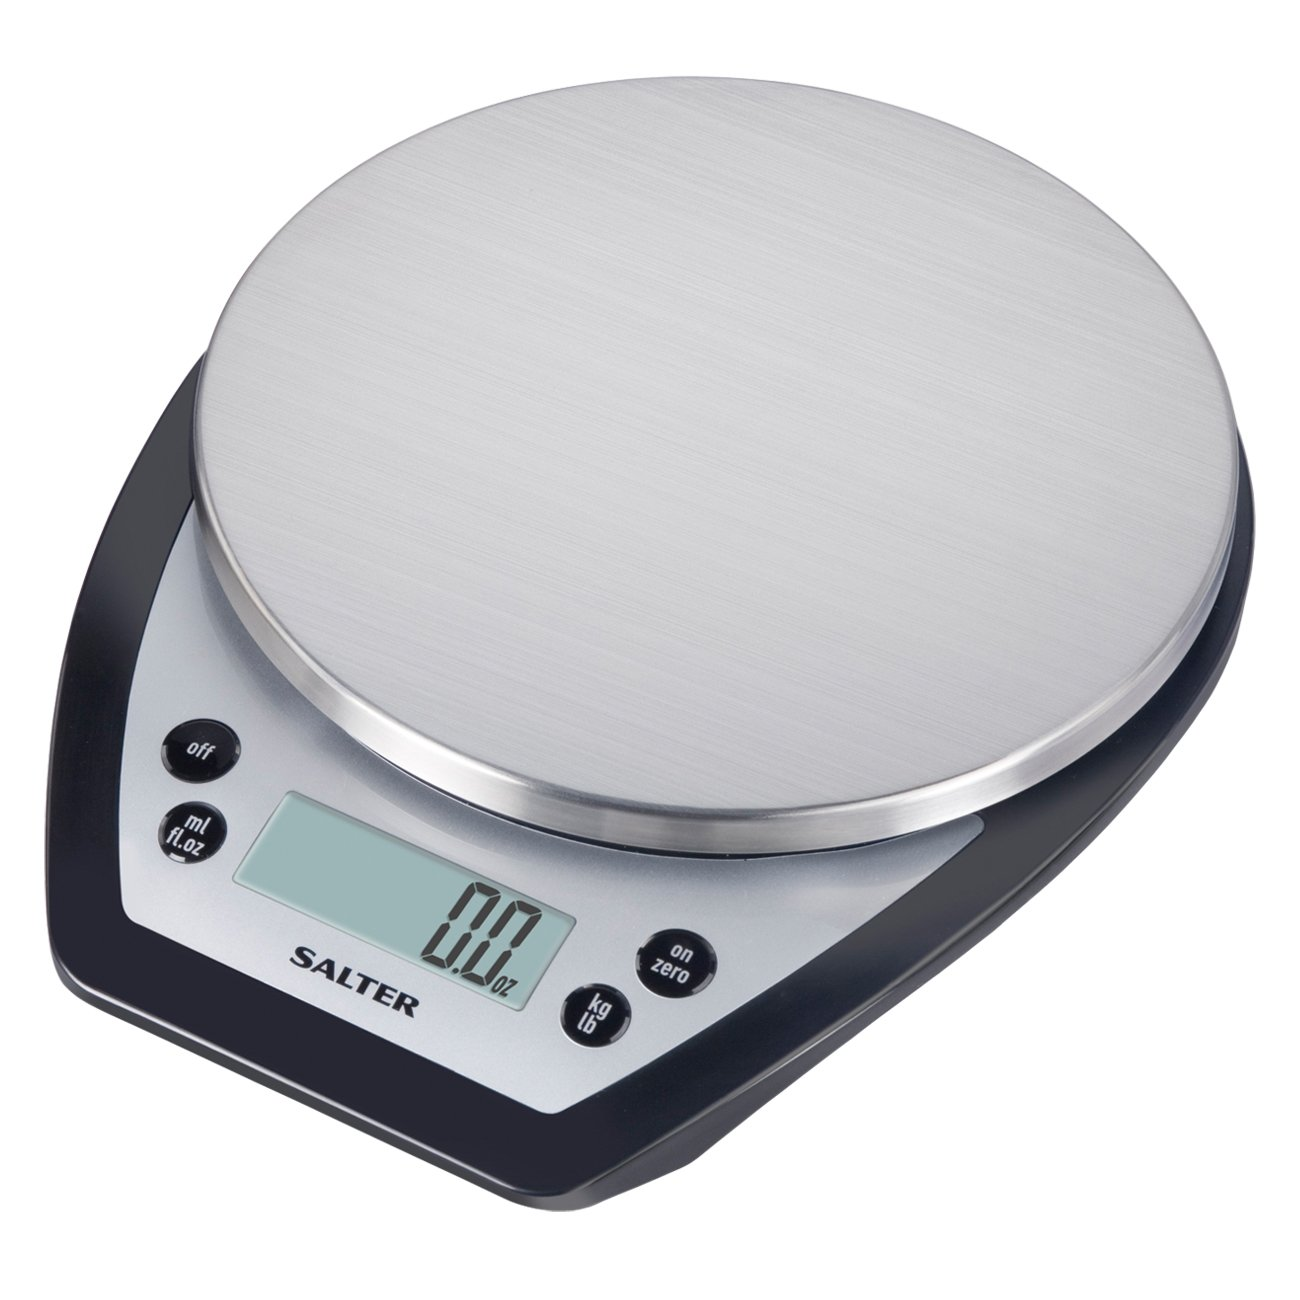 Salter Aquatronic Digital Kitchen Scale